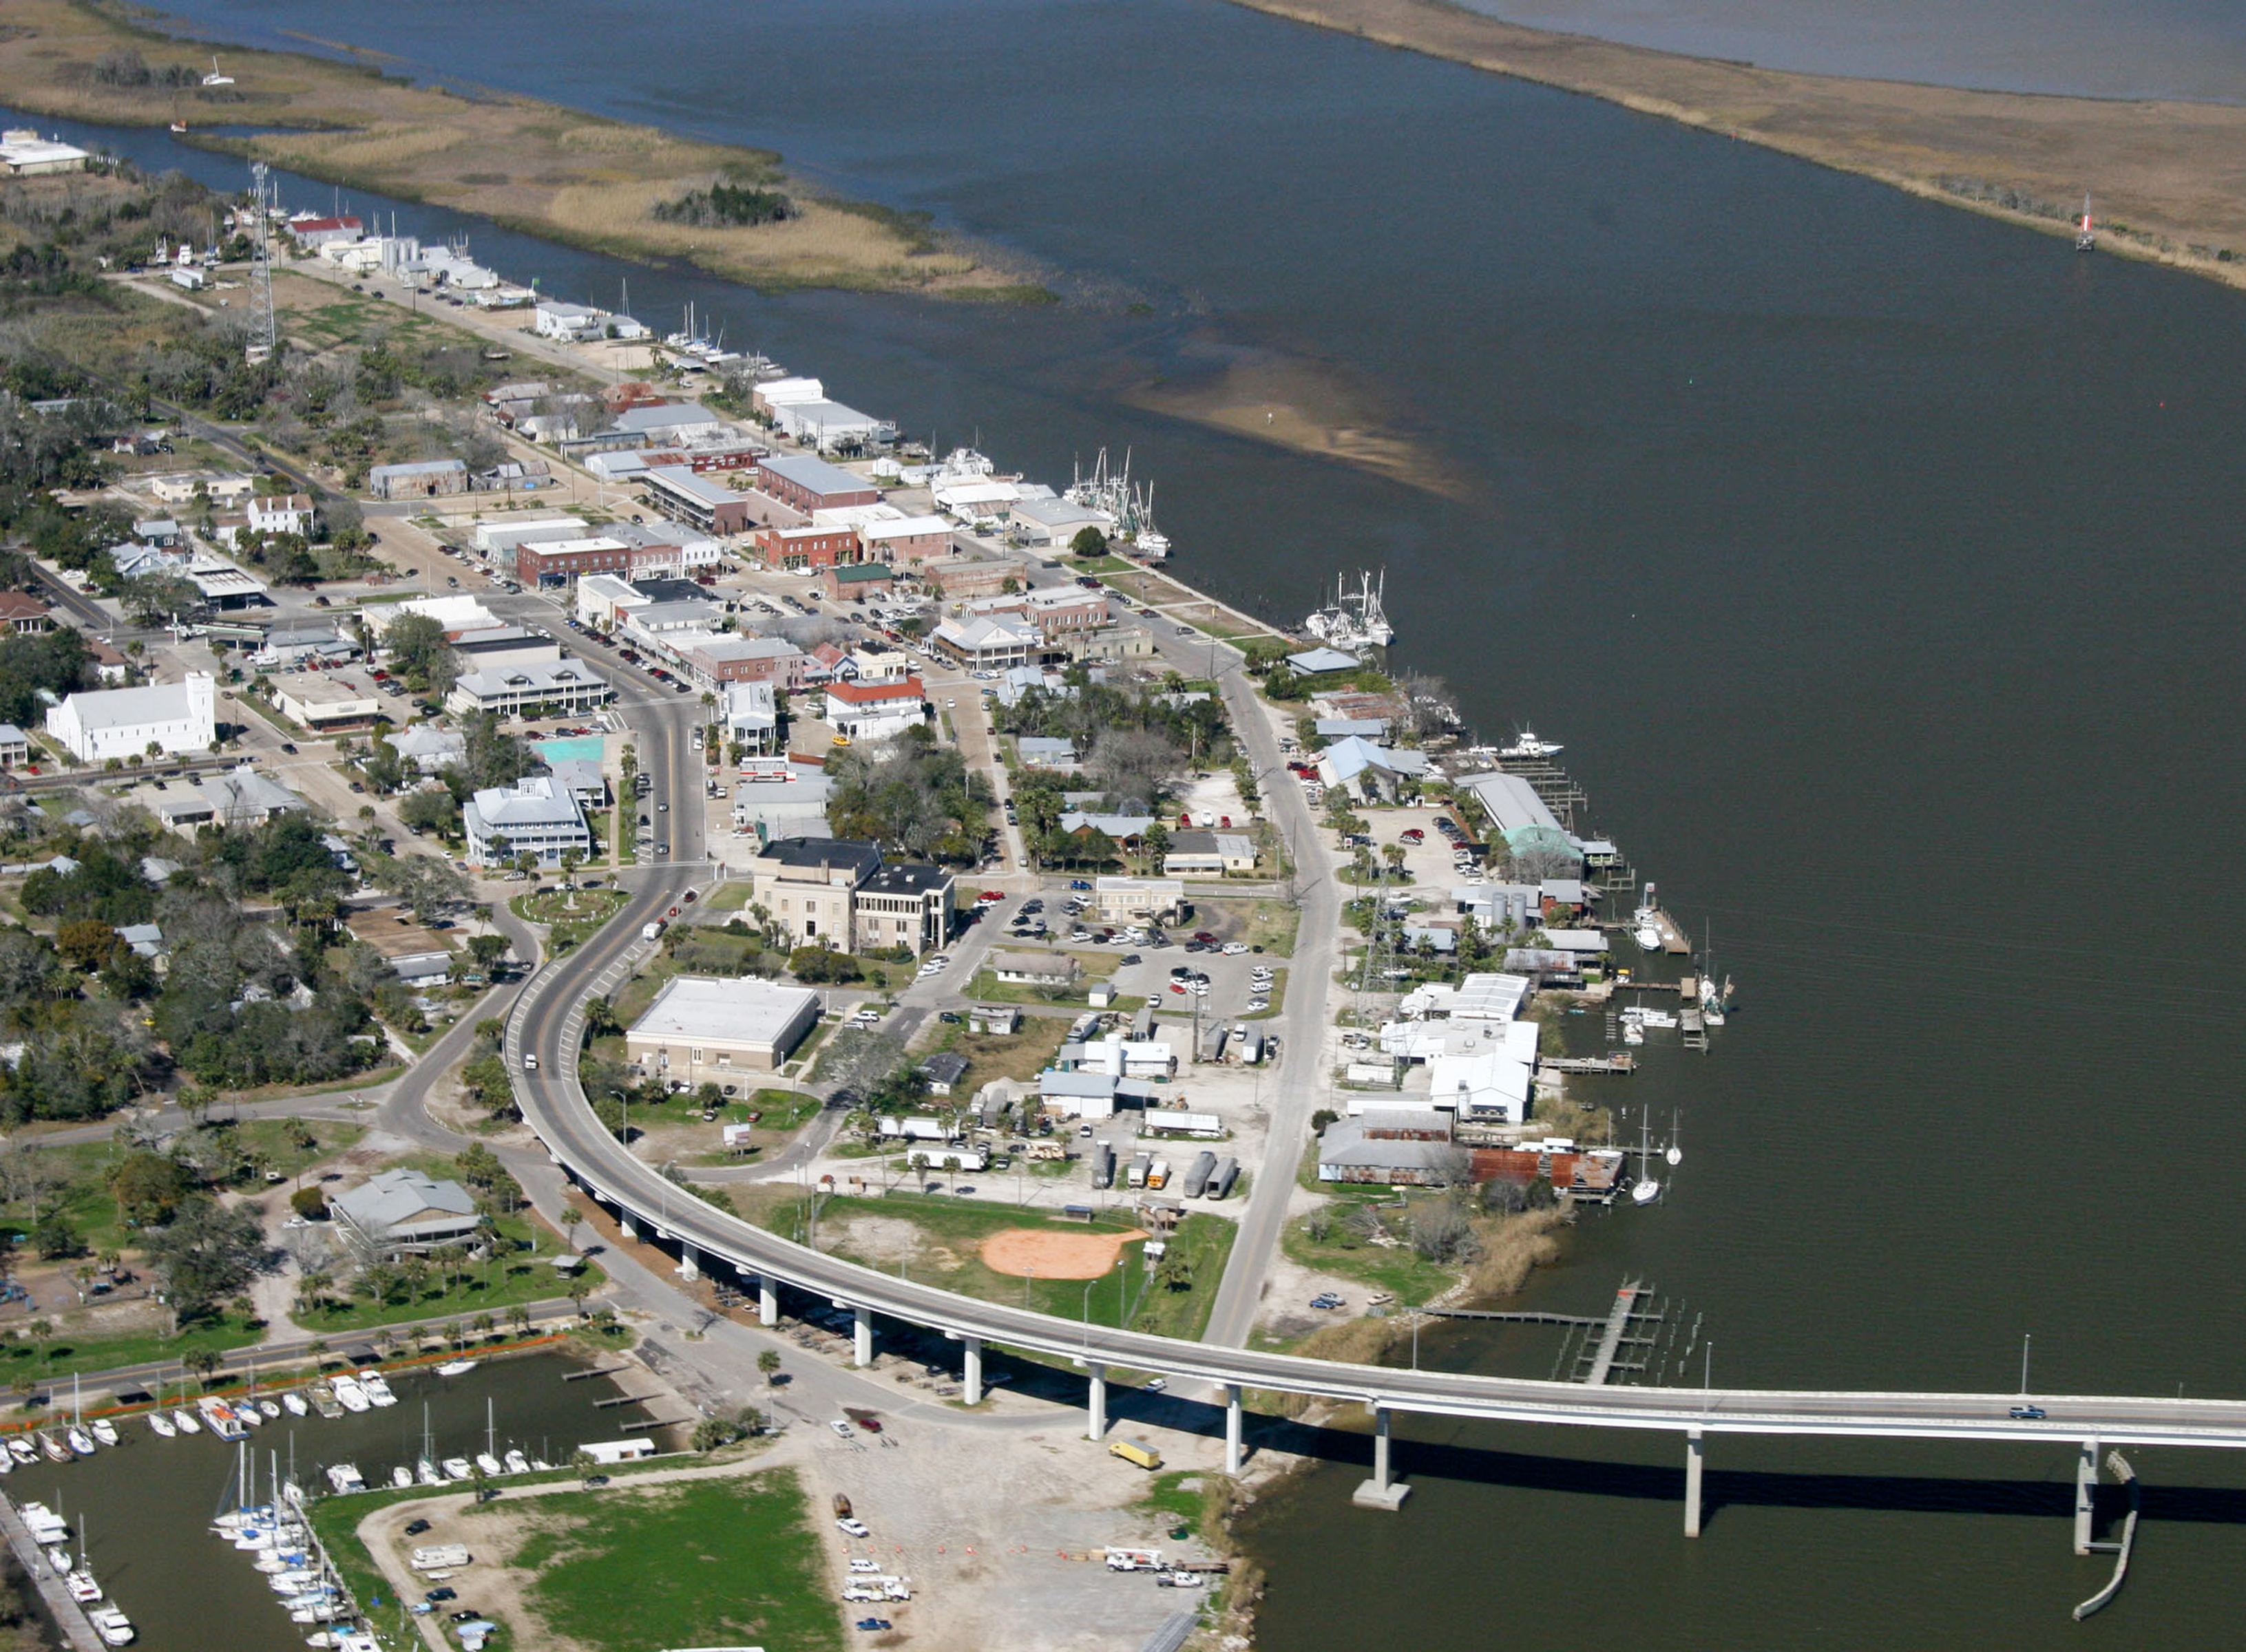 FeaturePics-Apalachicola-Aerial-View-095746-1077943